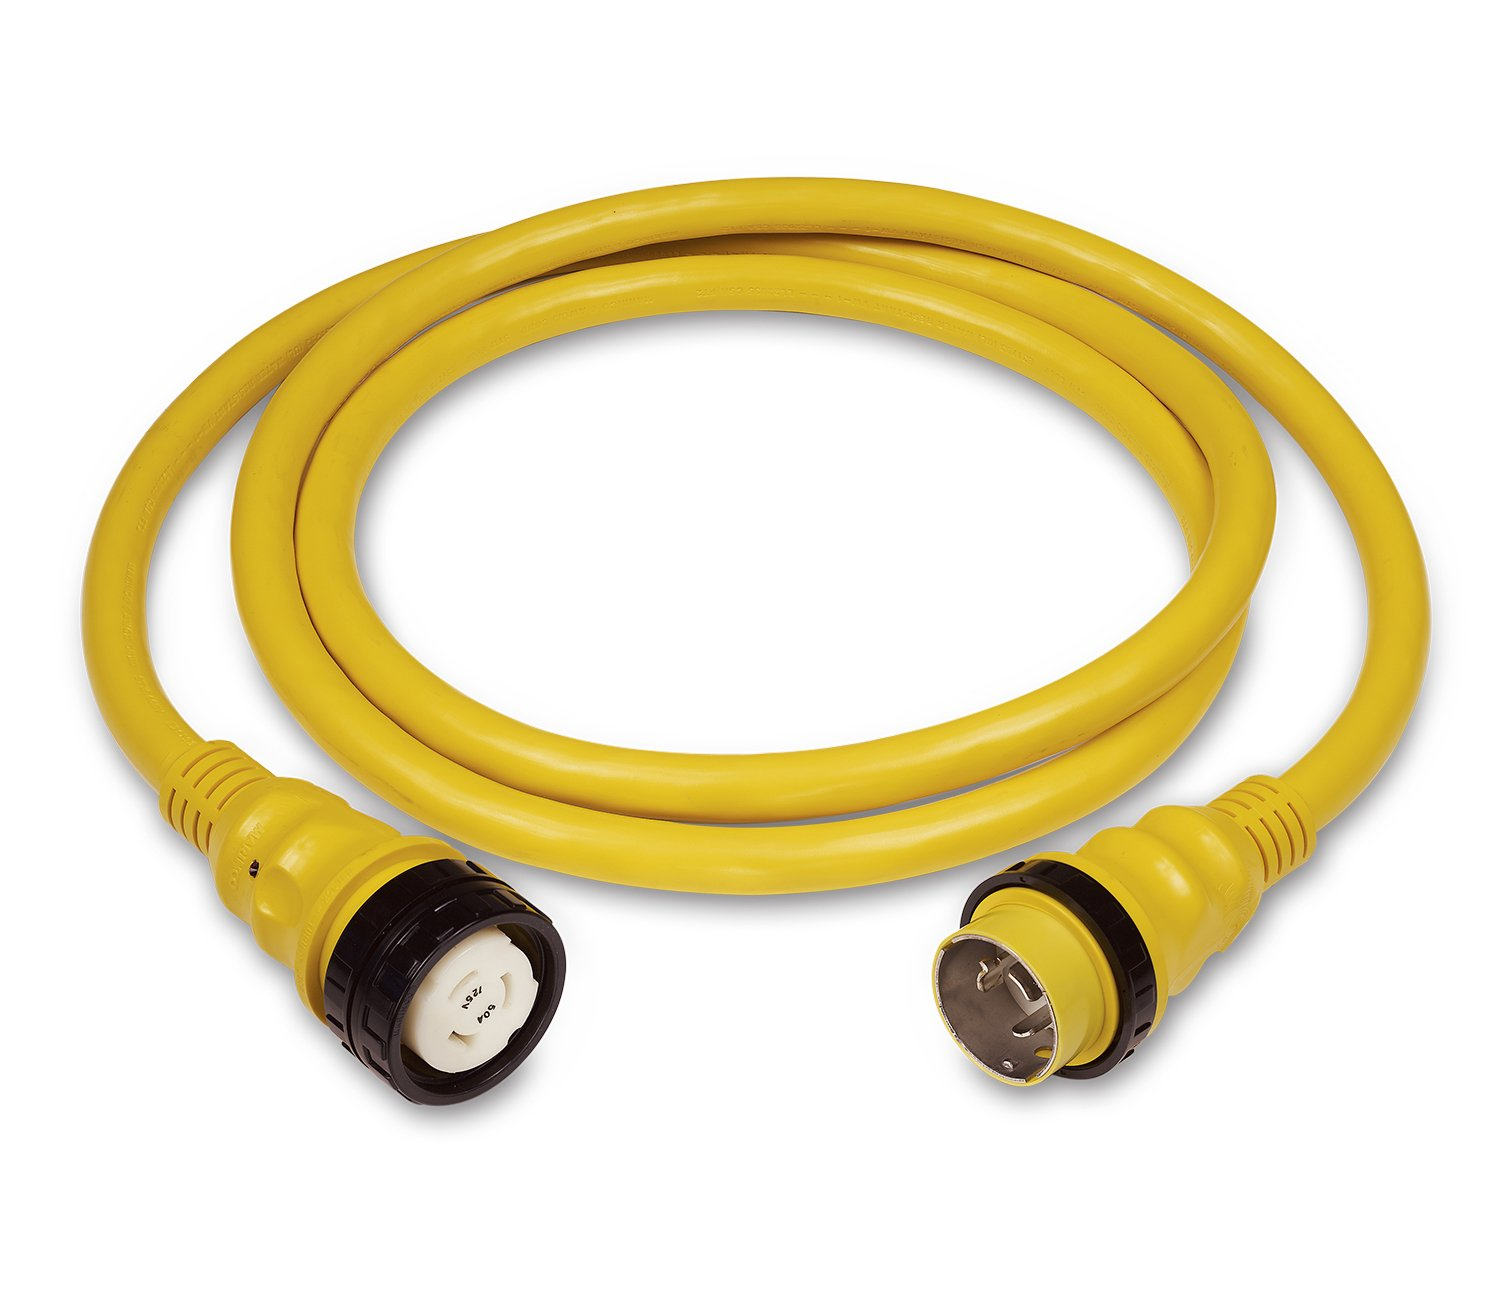 Marinco 6153SPP-25 PowerCord PLUS Marine 3-Wire Electrical Shore Power Cordset with LED Power Indicator Light (50-Amp, 125-Volt, 25-Feet, Yellow)